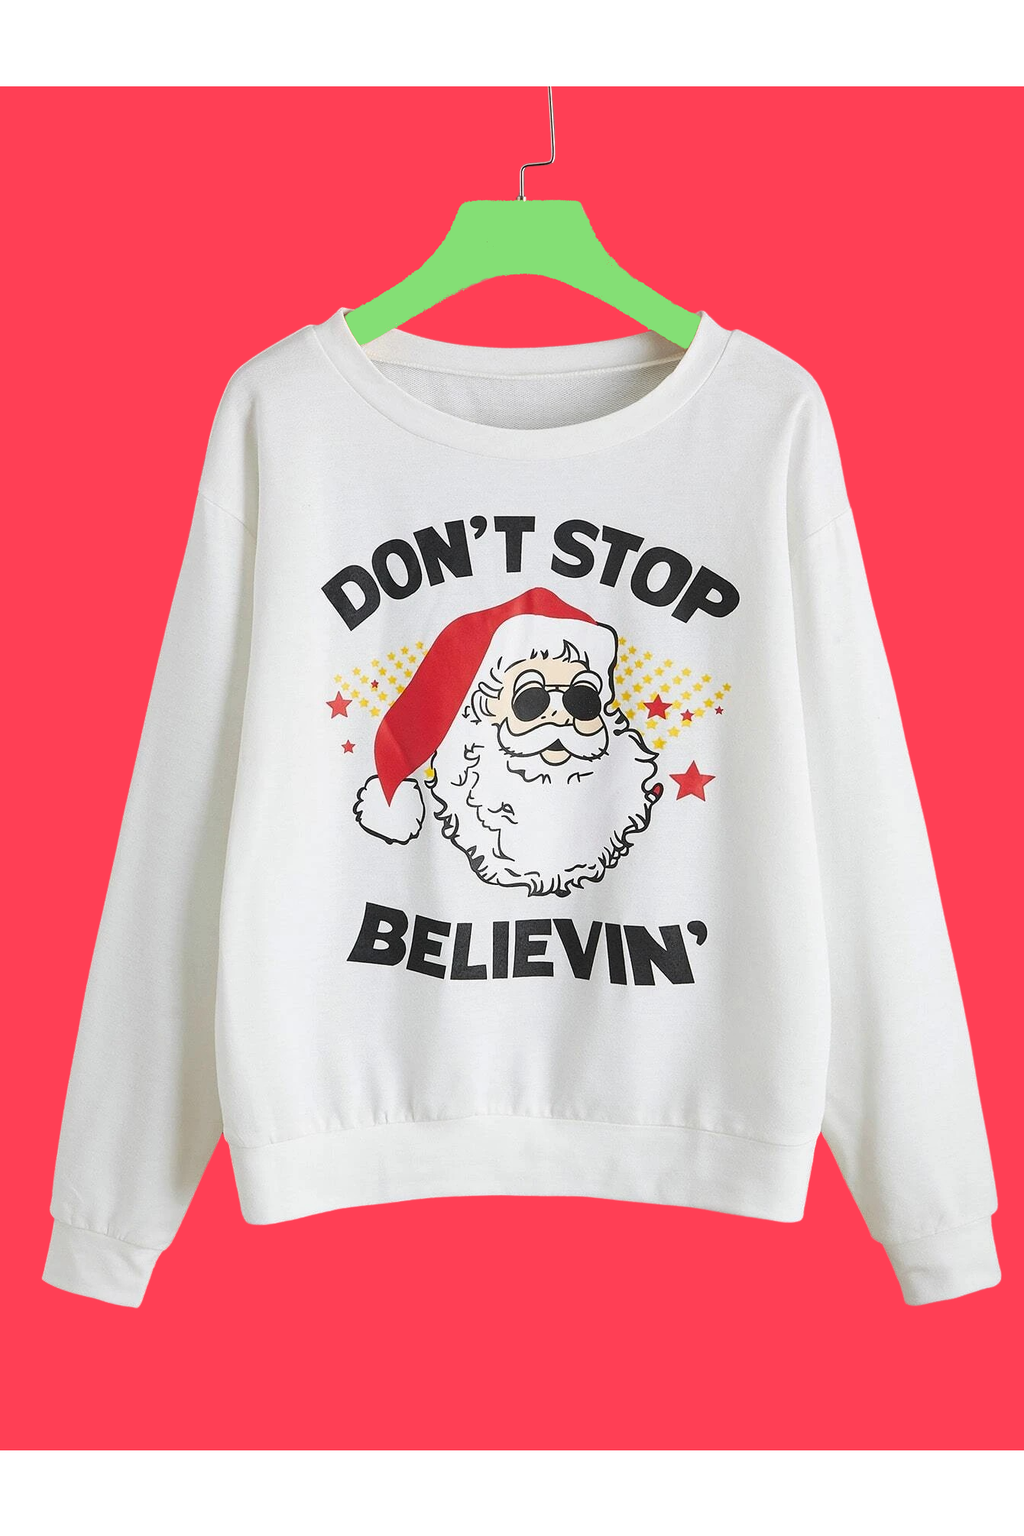 Don't Stop Believing Christmas Sweater